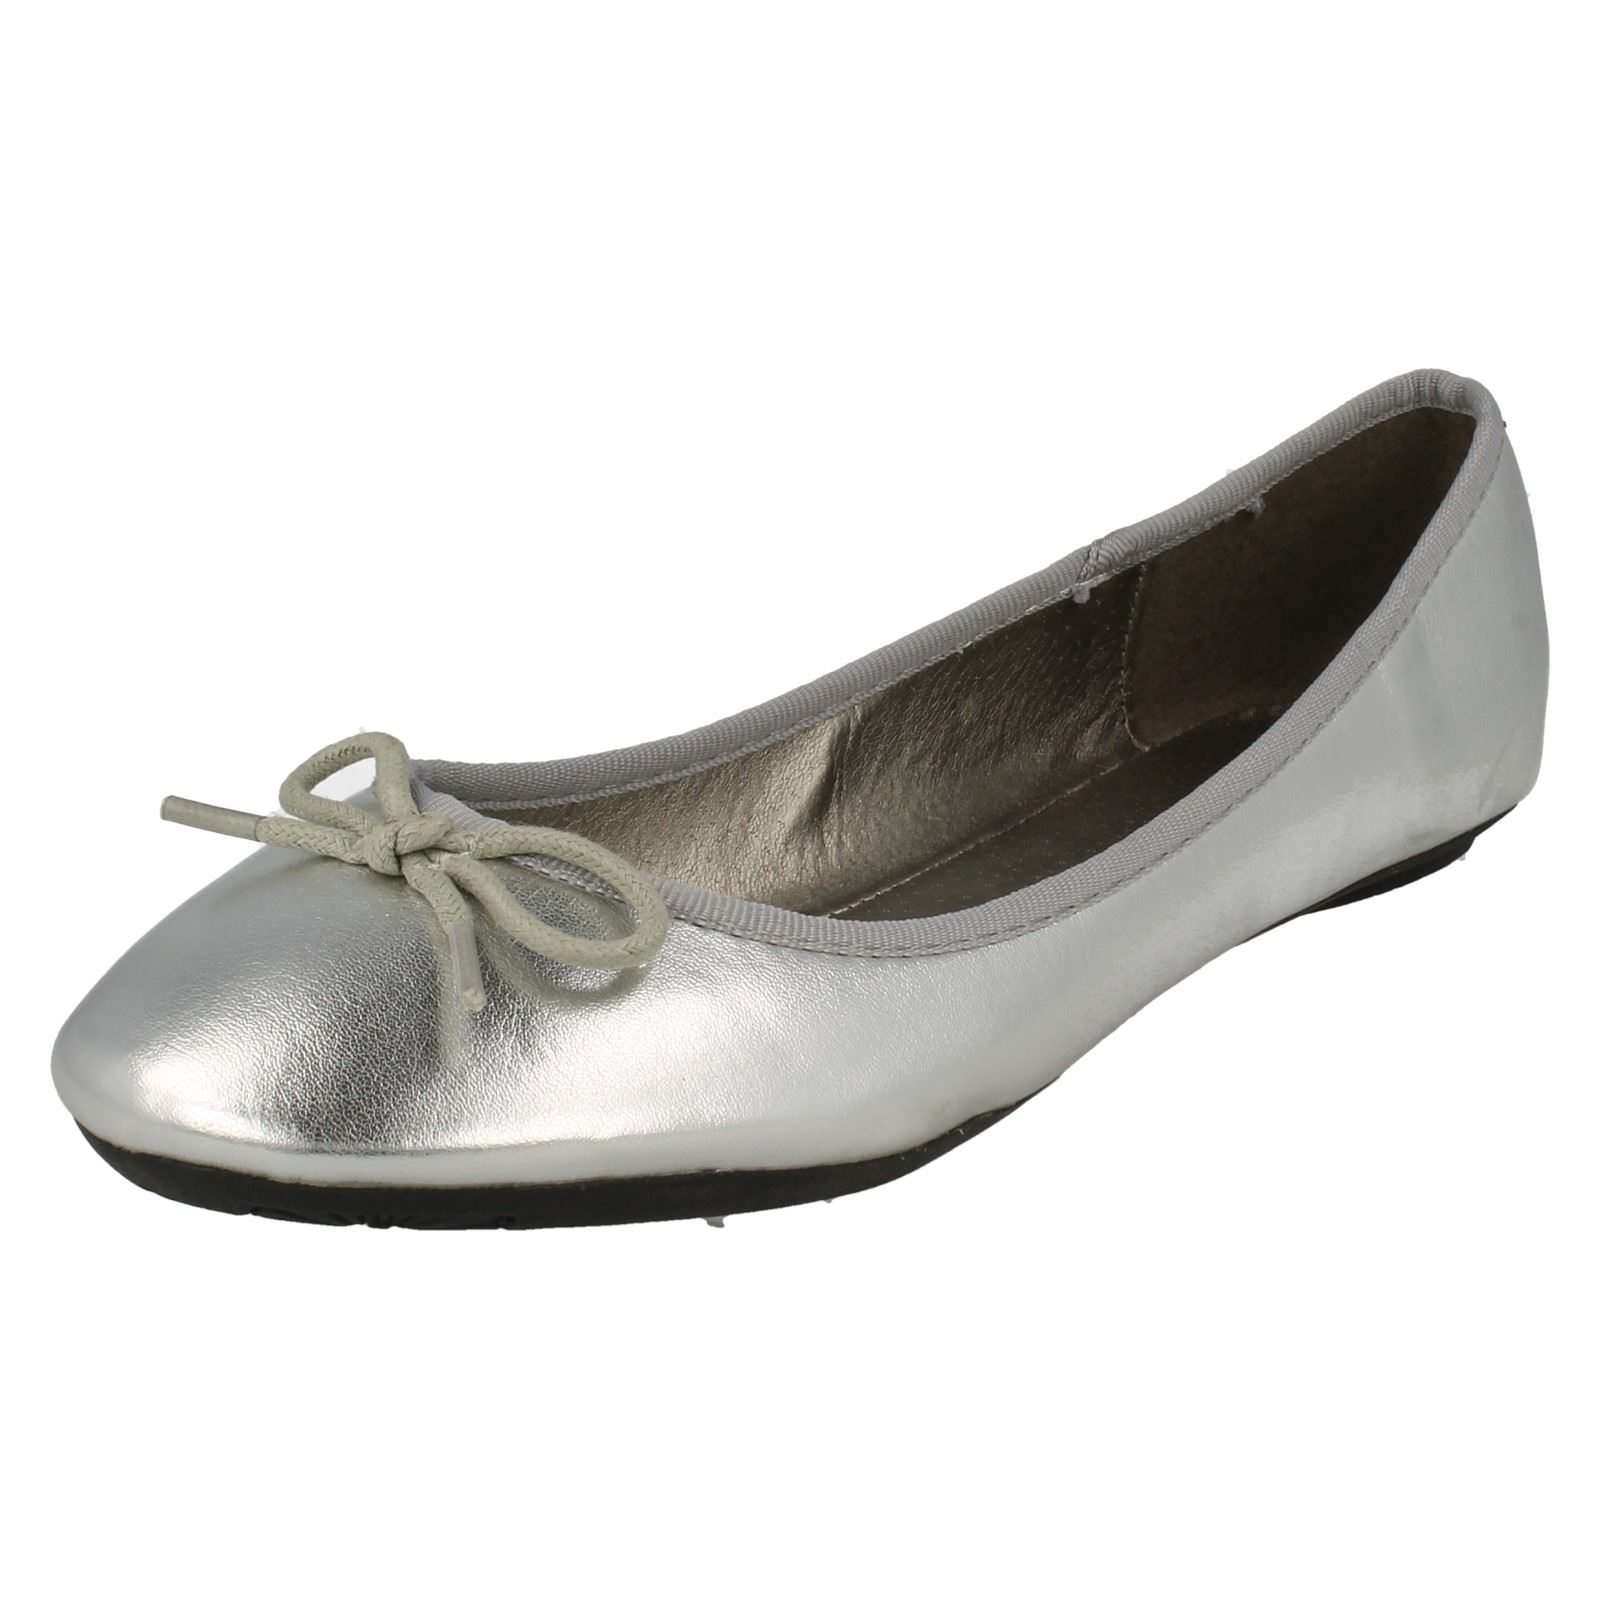 Damas Spot On Informales Zapatos De Ballet F8662